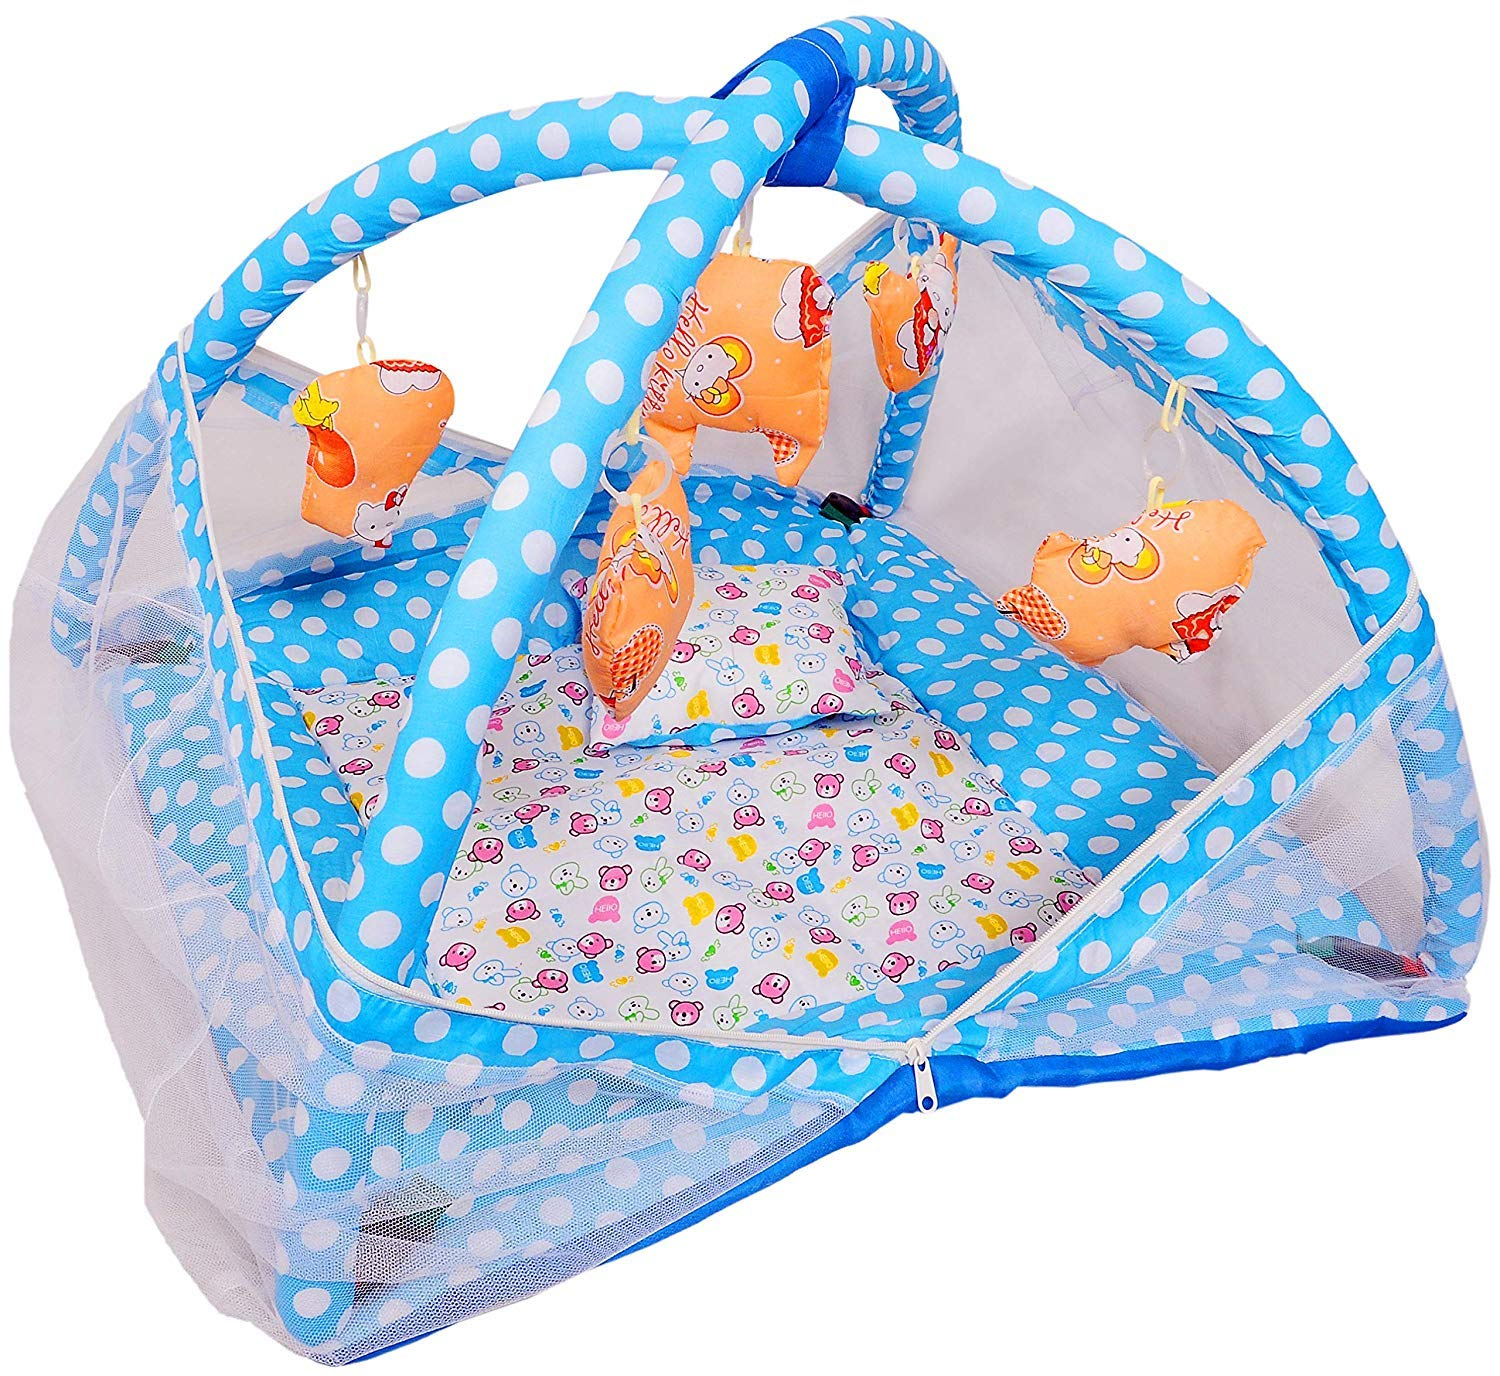 Buy Prime Deals Baby Kick and Play Gym with Mosquito Net and Baby Bedding  Set- Multi Colour (Blue 21957023a11f8